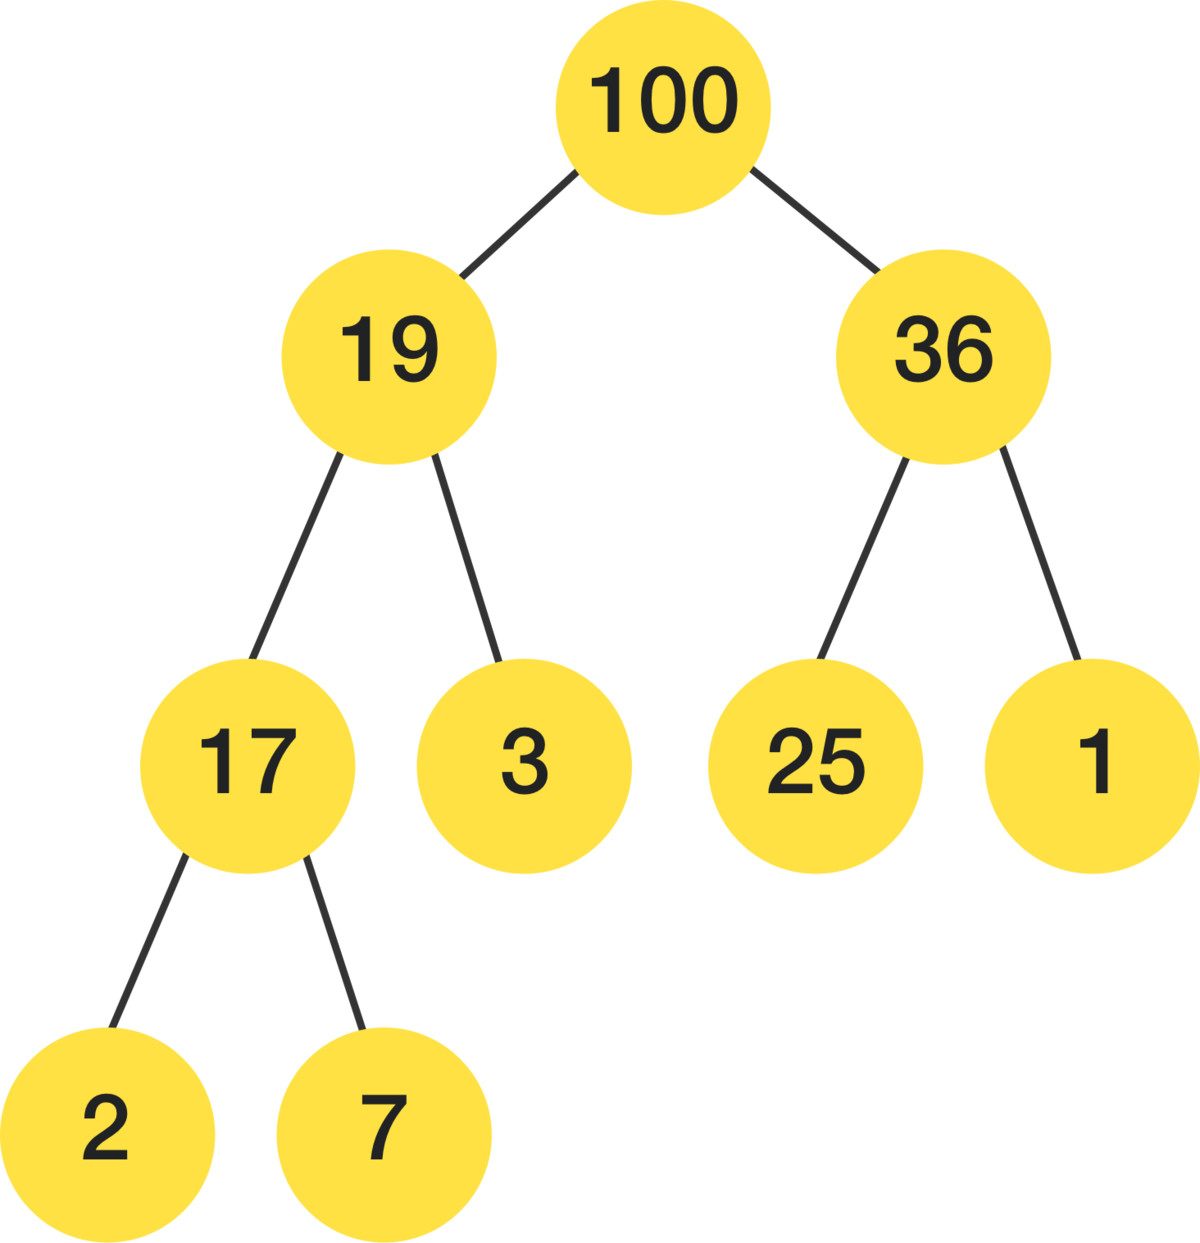 Example of a complete binary max-heap with node keys being integers from 1 to 100